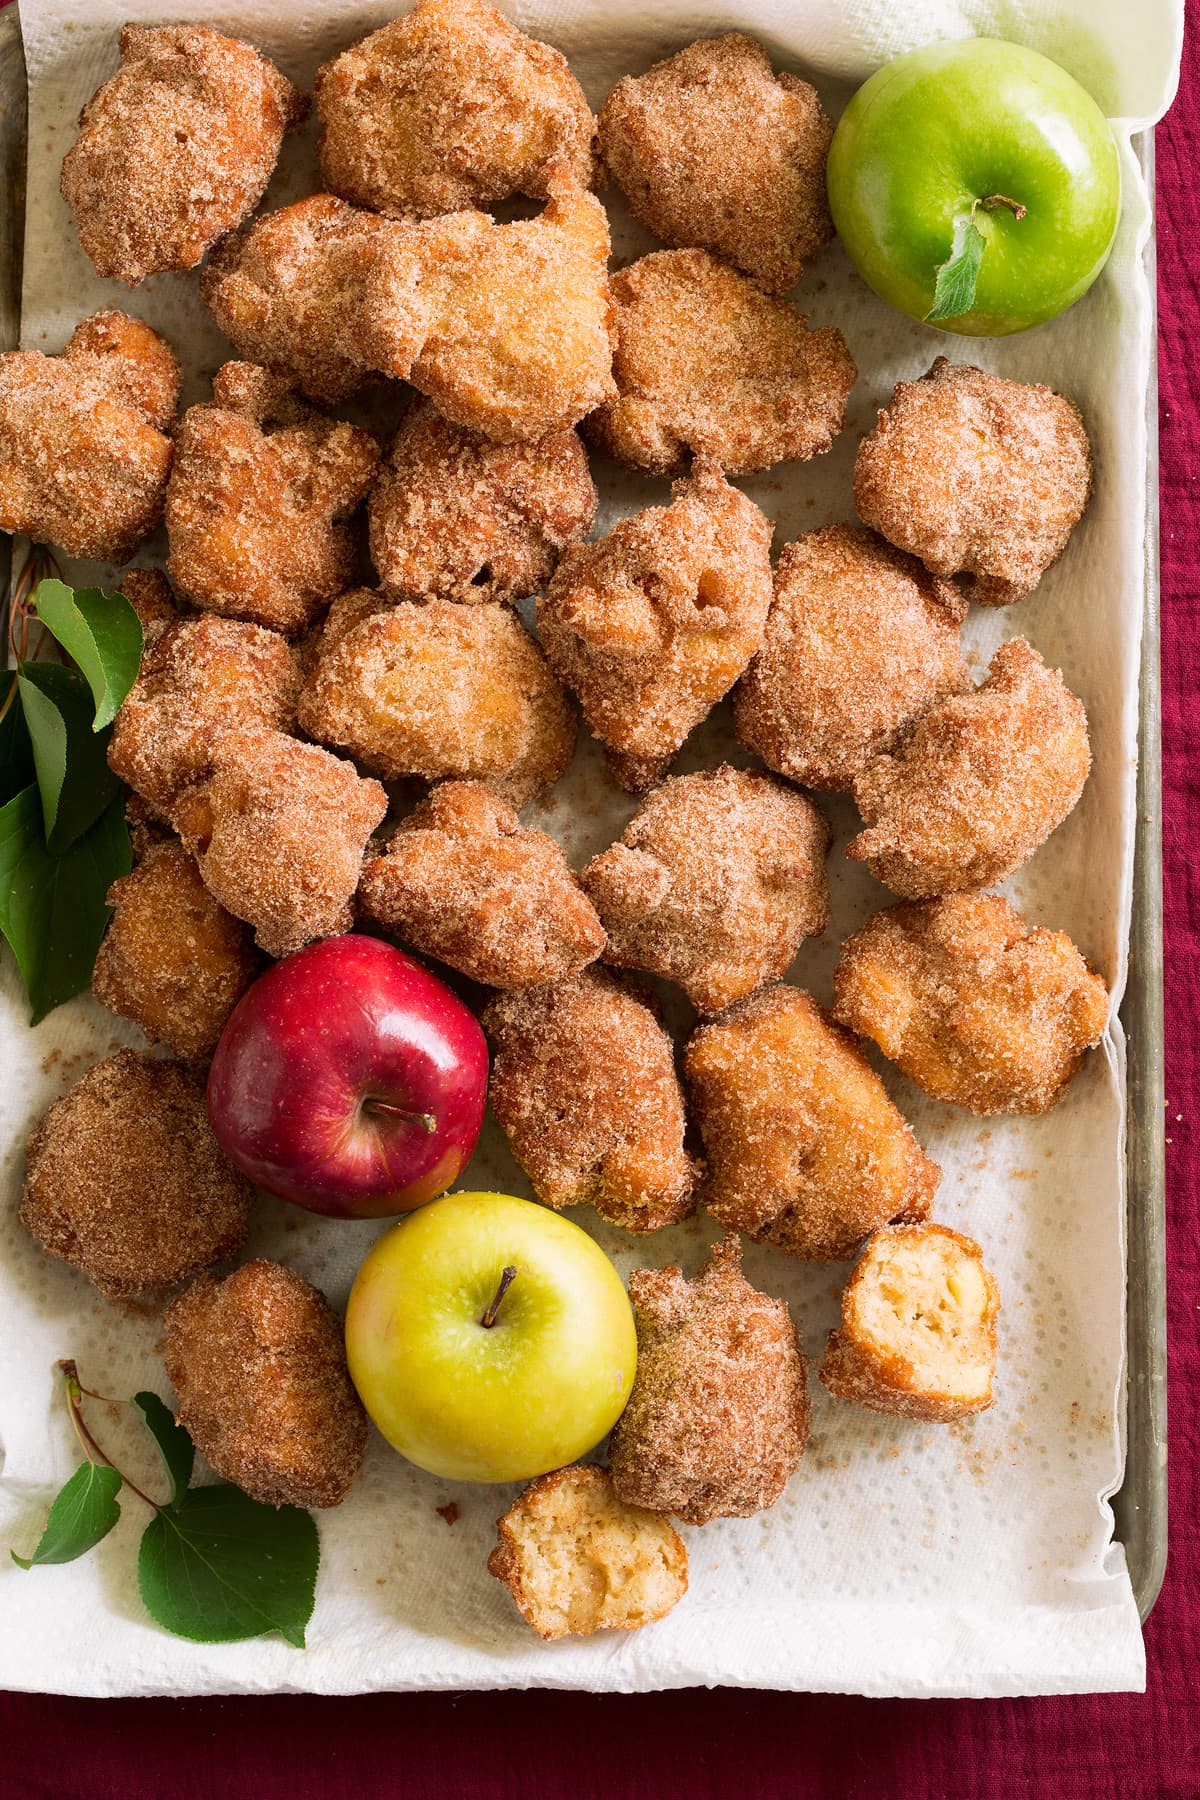 Apple fritters on a baking sheet covered with a paper towel.